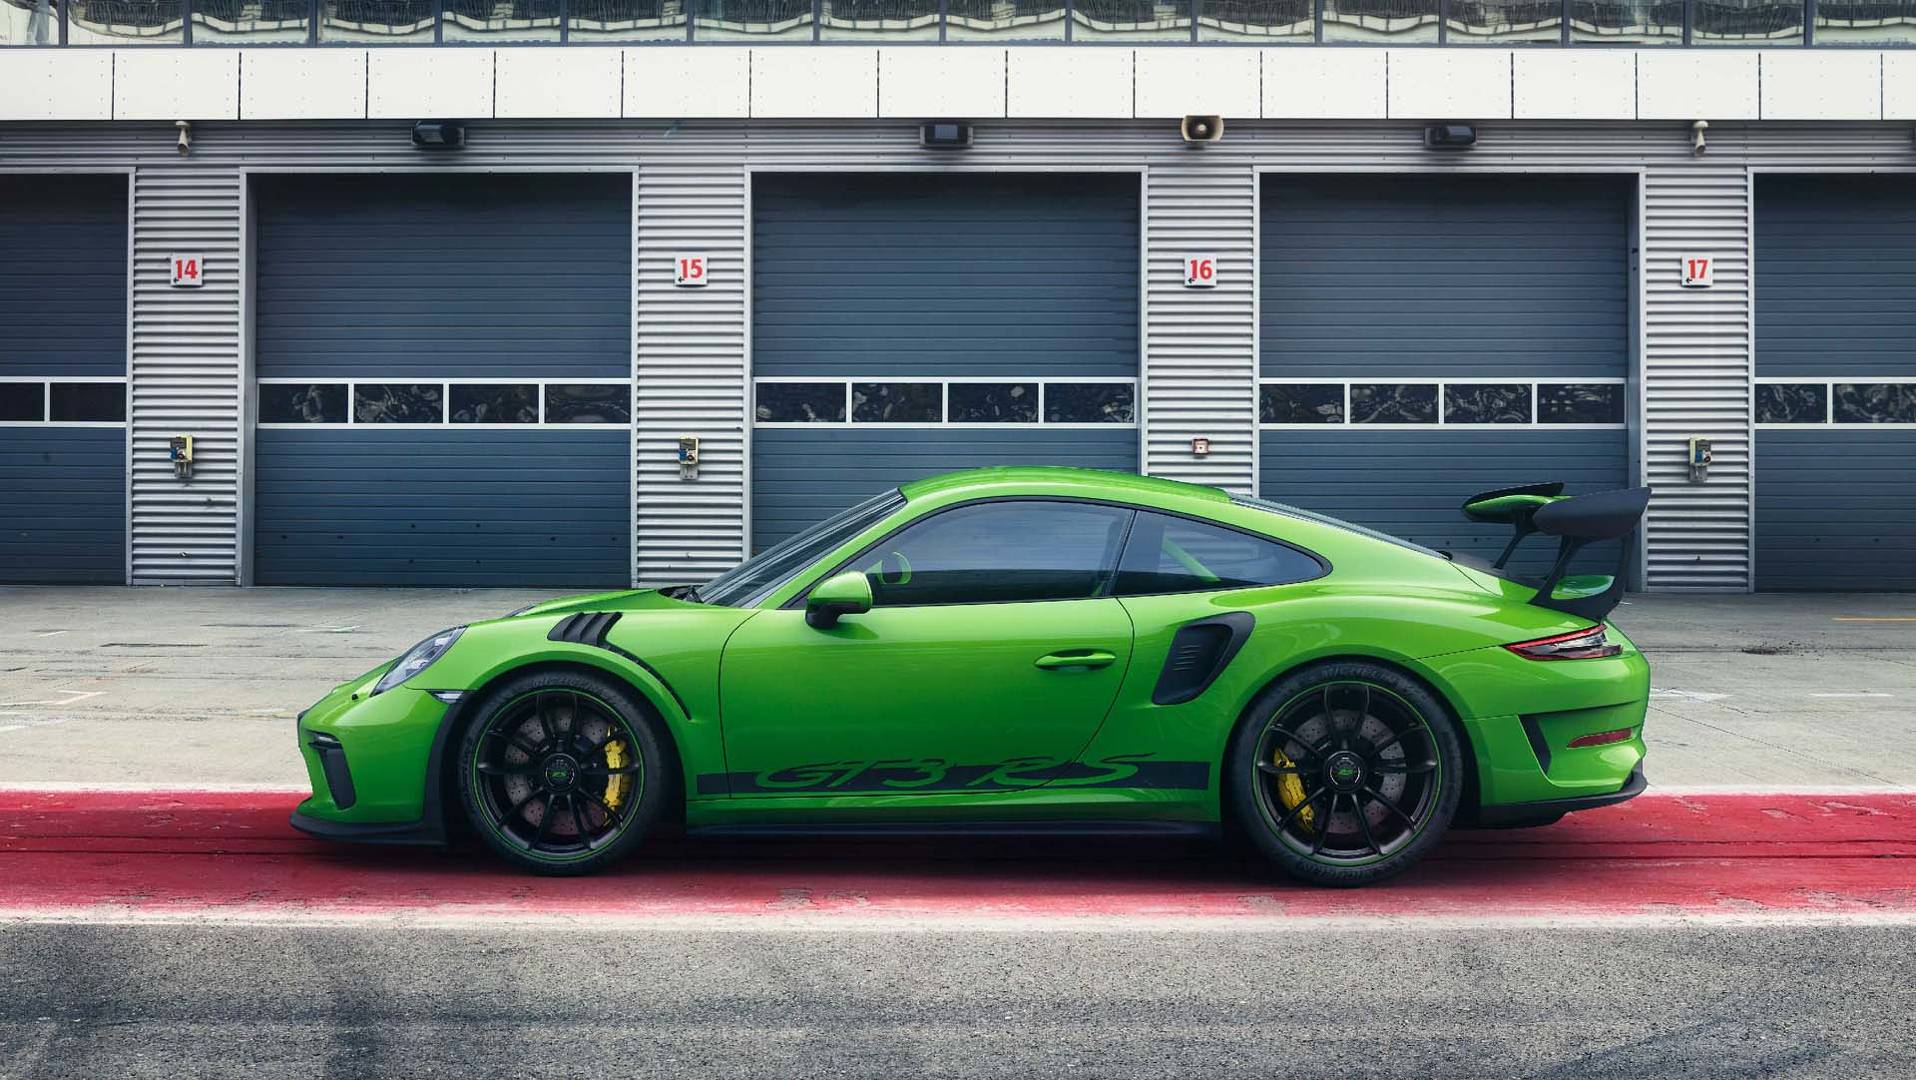 The Most Expensive Porsche 911 Gt3 Rs Costs 253240